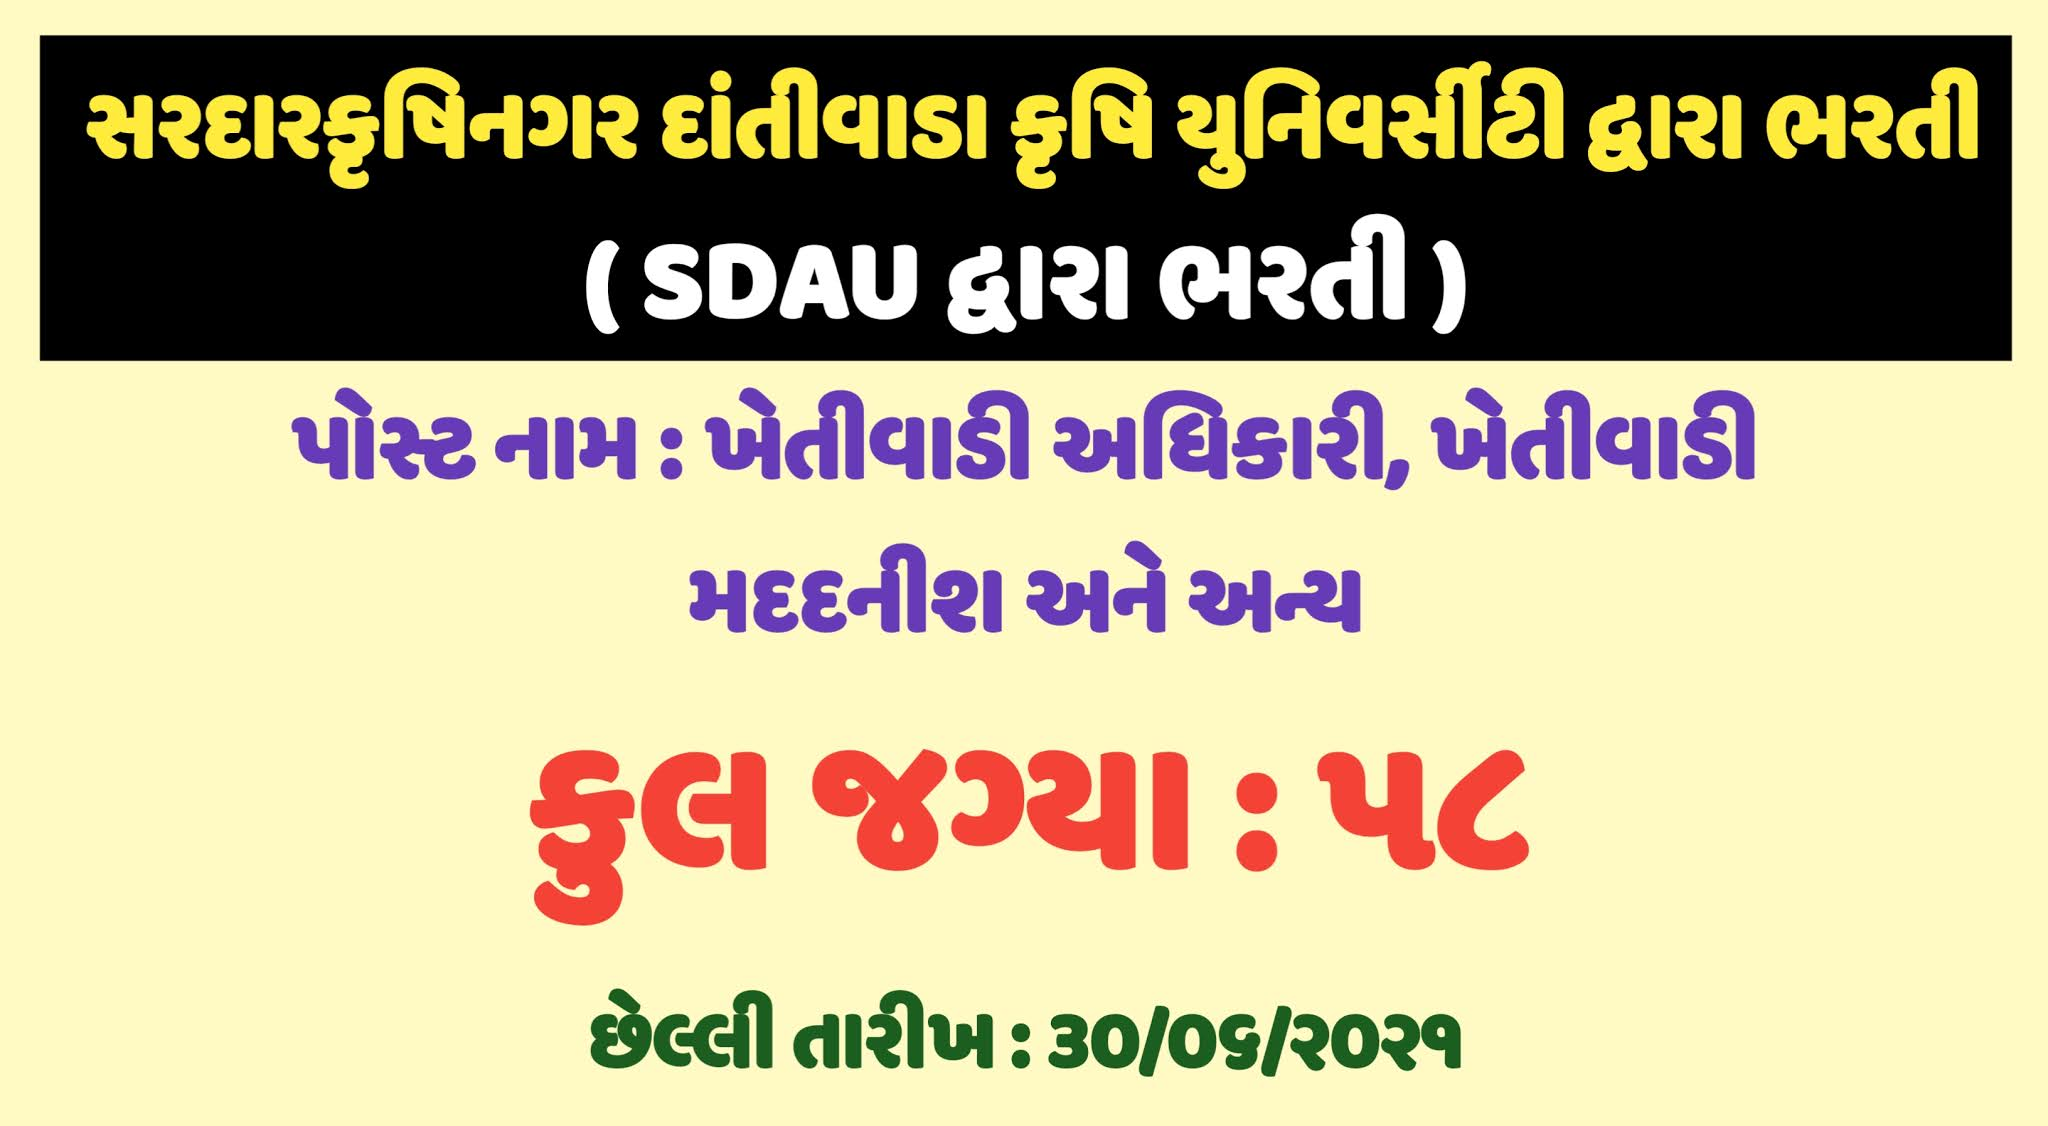 SDAU Recruitment 2021 for Senior Research Assistant and Agriculture Assistant post